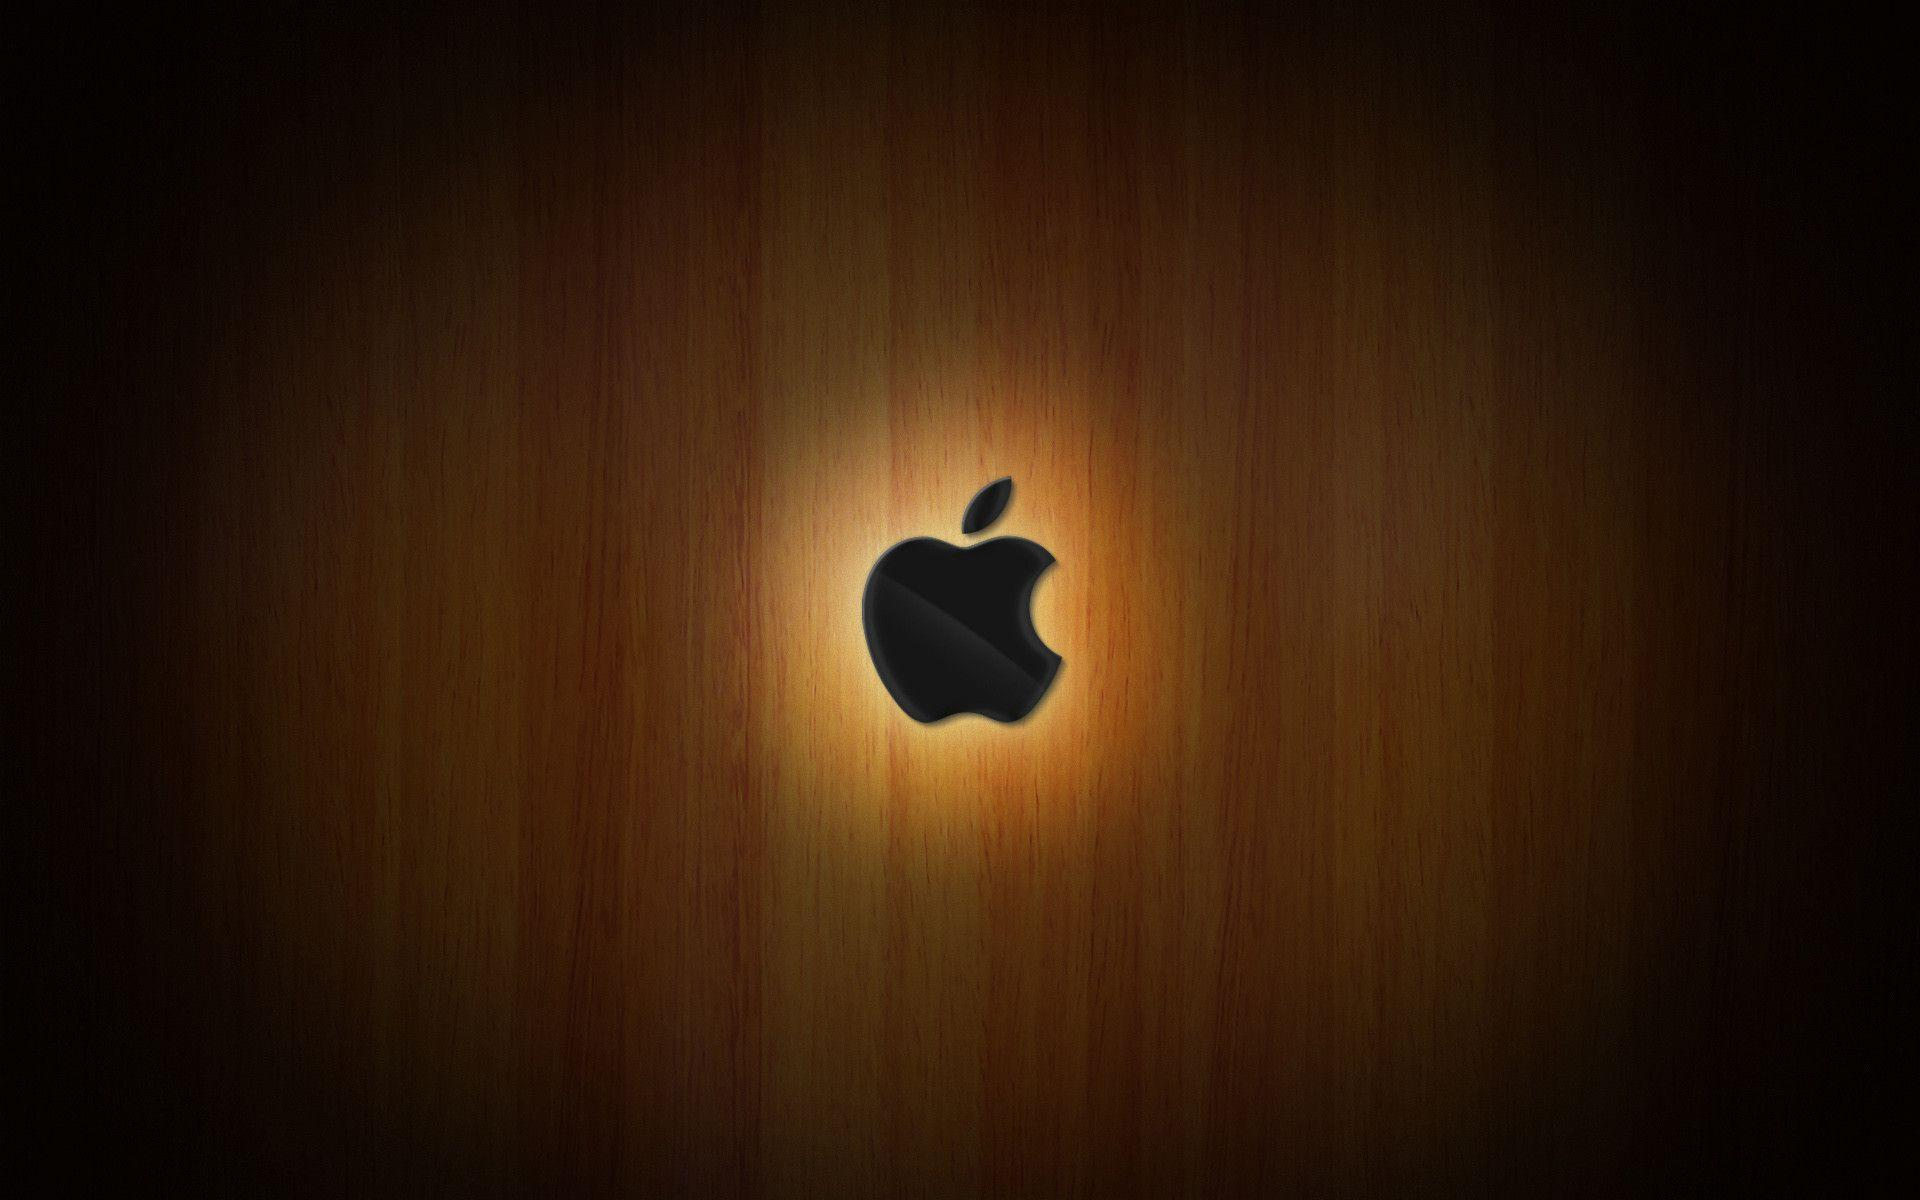 Hd Wallpapers Desktop Backgrounds Apple Wallpaper Cave